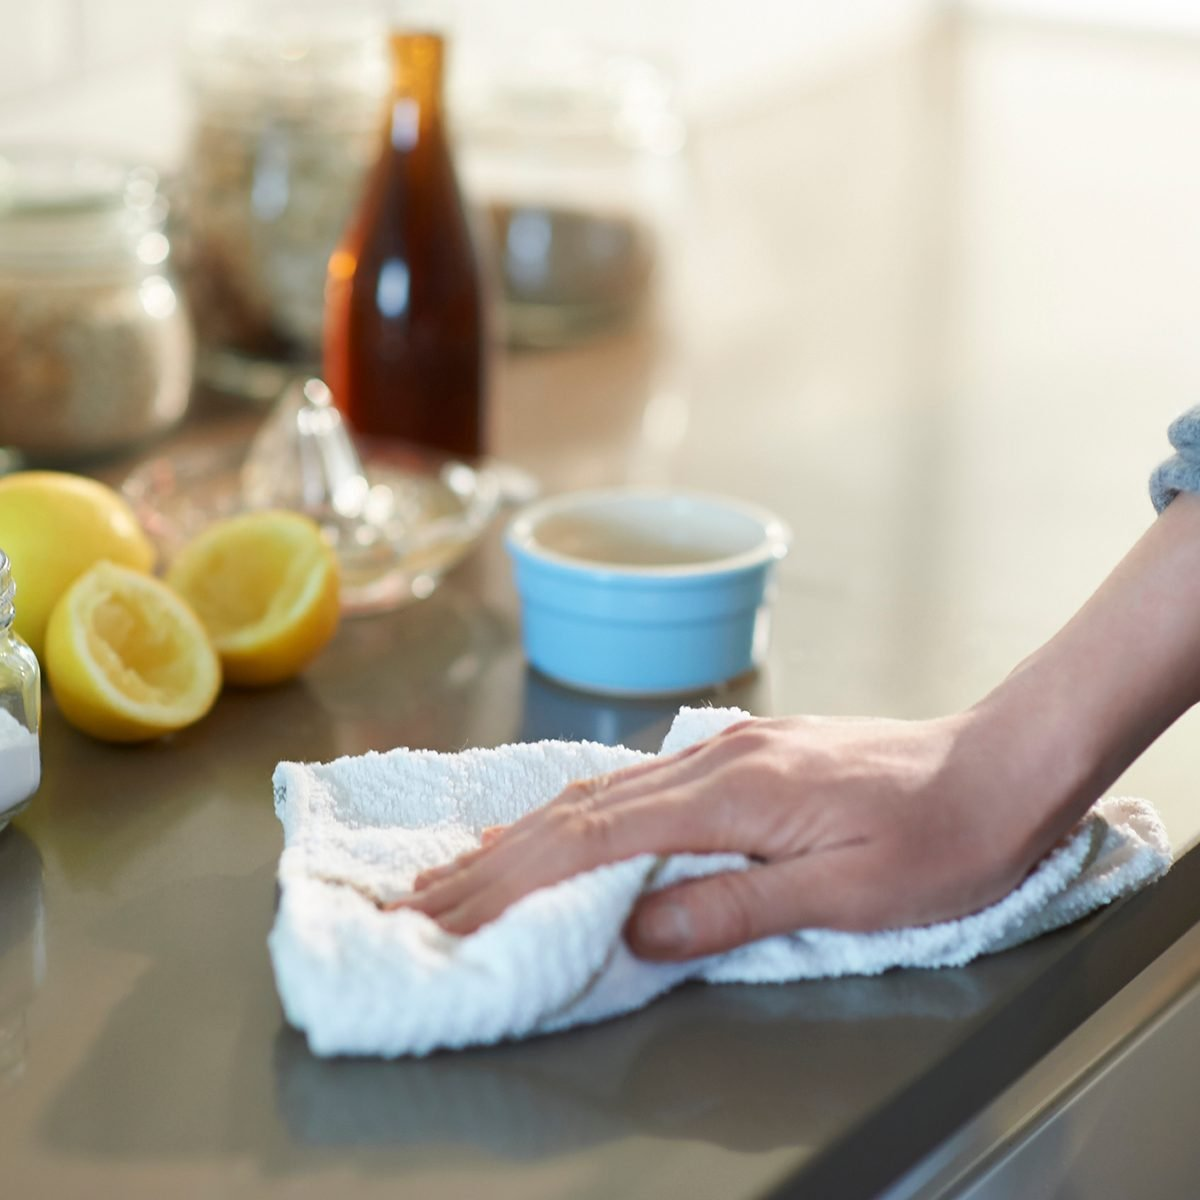 Woman cleaning a kitchen worktop with natural cleaning products lemon, bicarbonate of soda and vinegar.